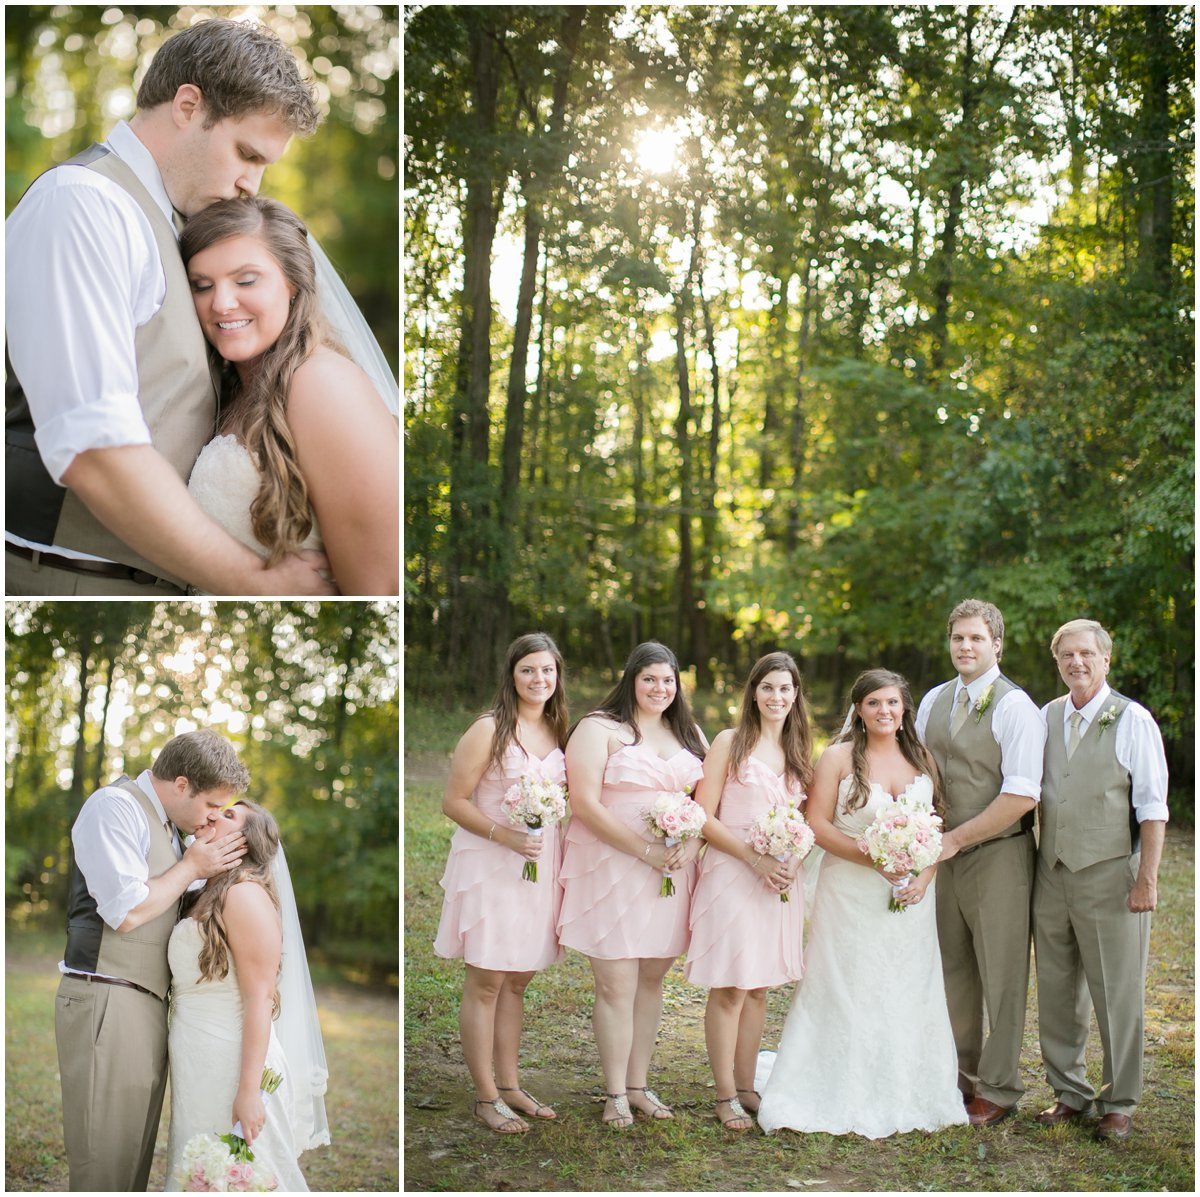 JuliannPrestonWedding_0009